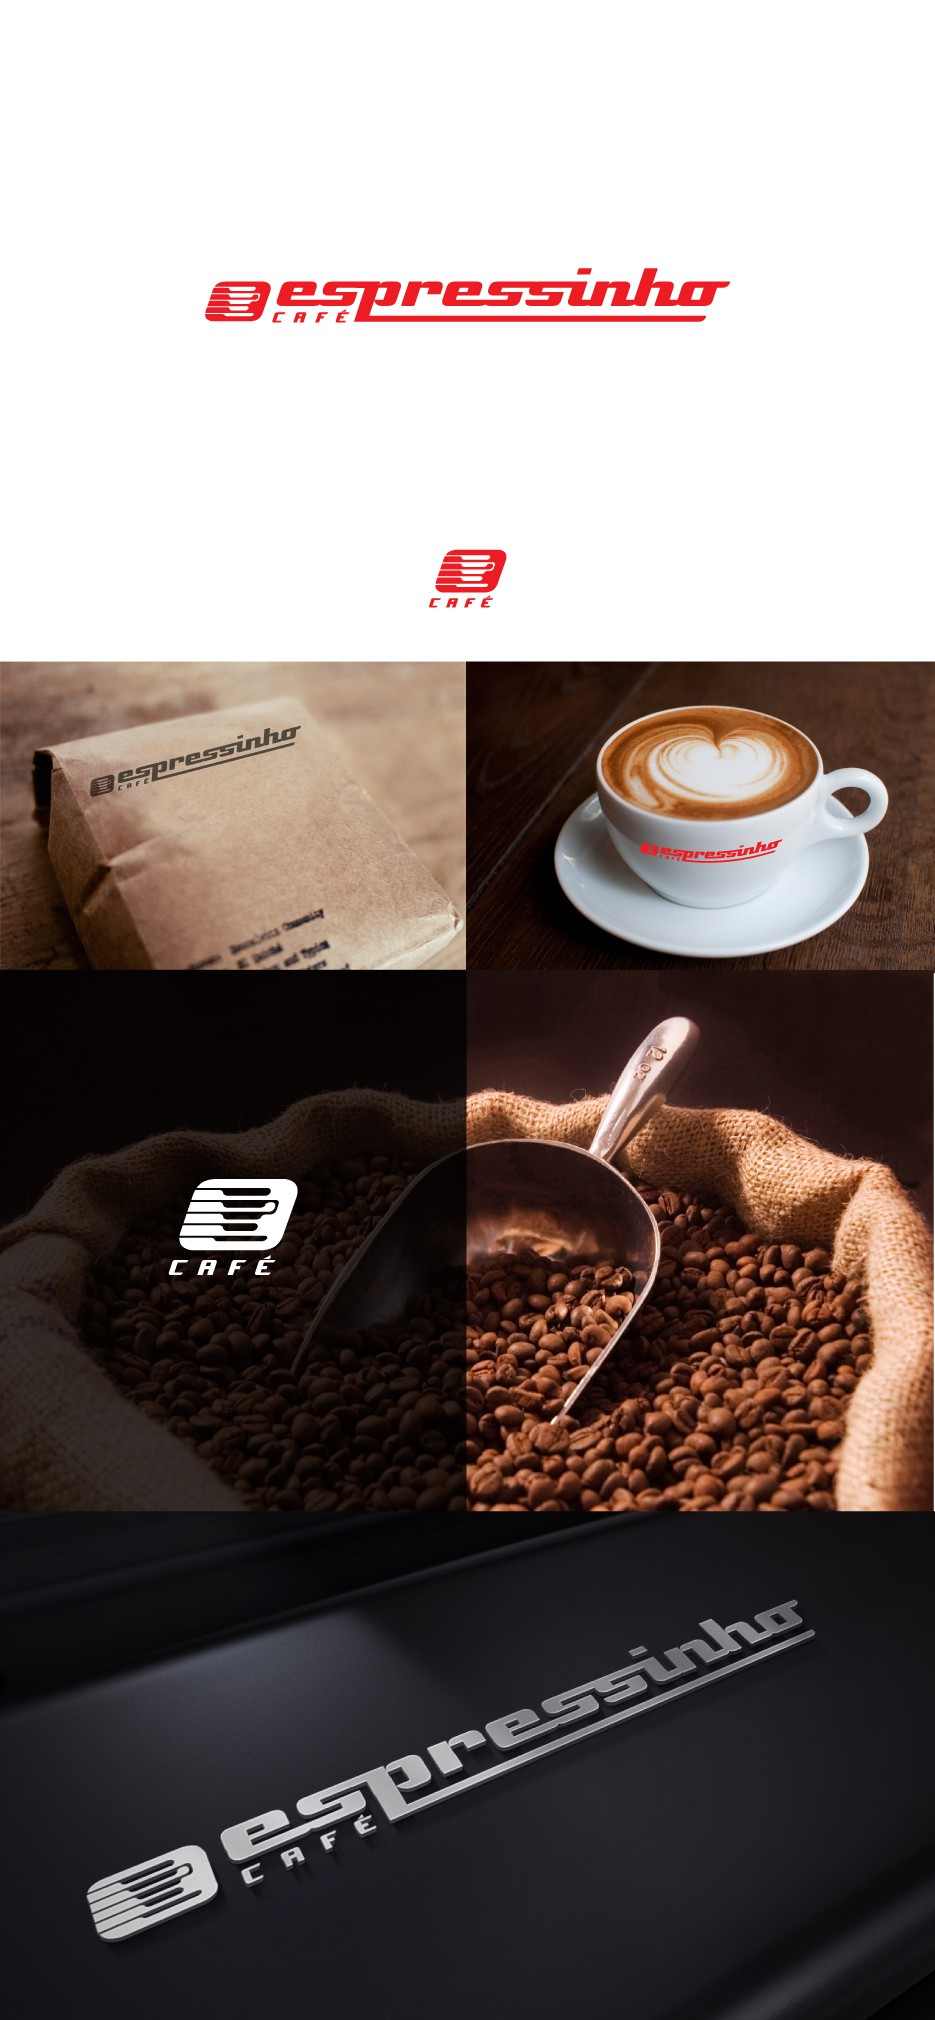 New coffee brand for the Brazilian market